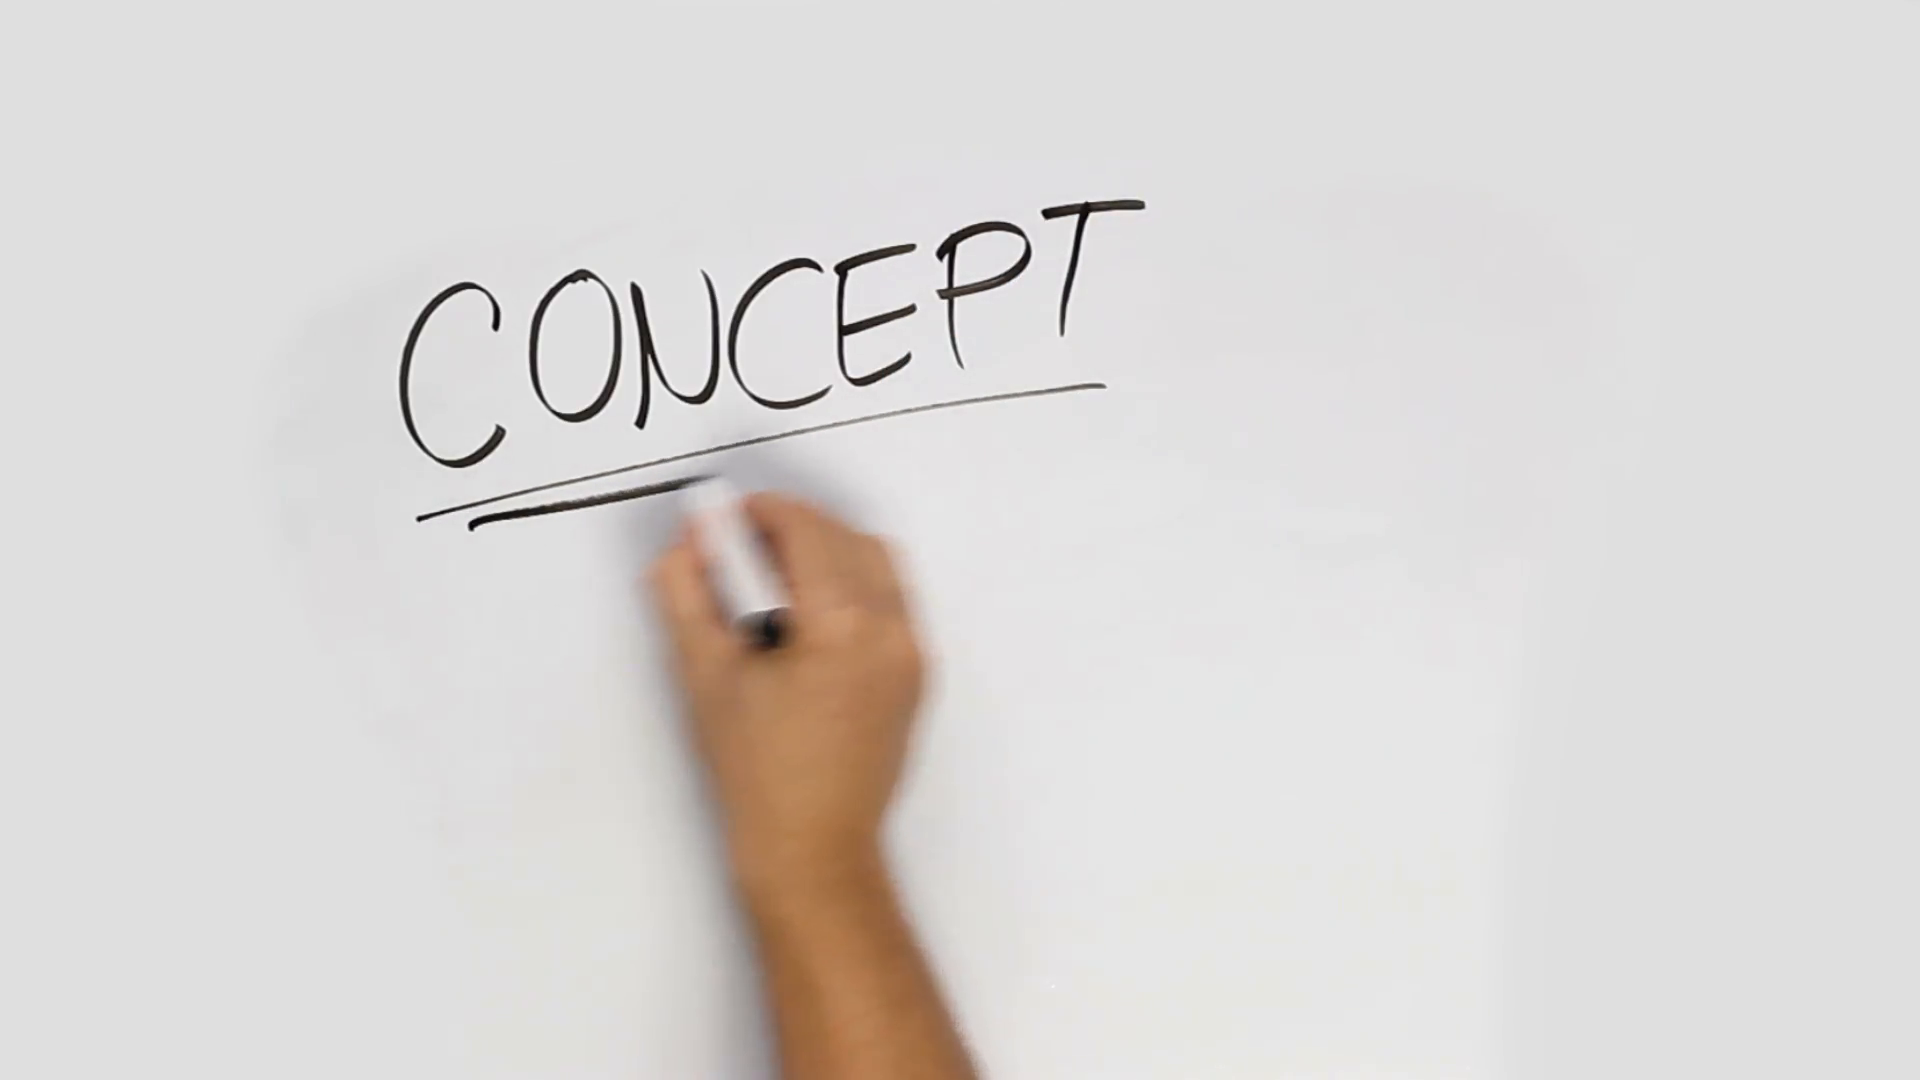 hand-using-a-black-marker-to-write-an-intro-title-concept-on-a-whiteboard_sprhbzfv__F0013 2.png